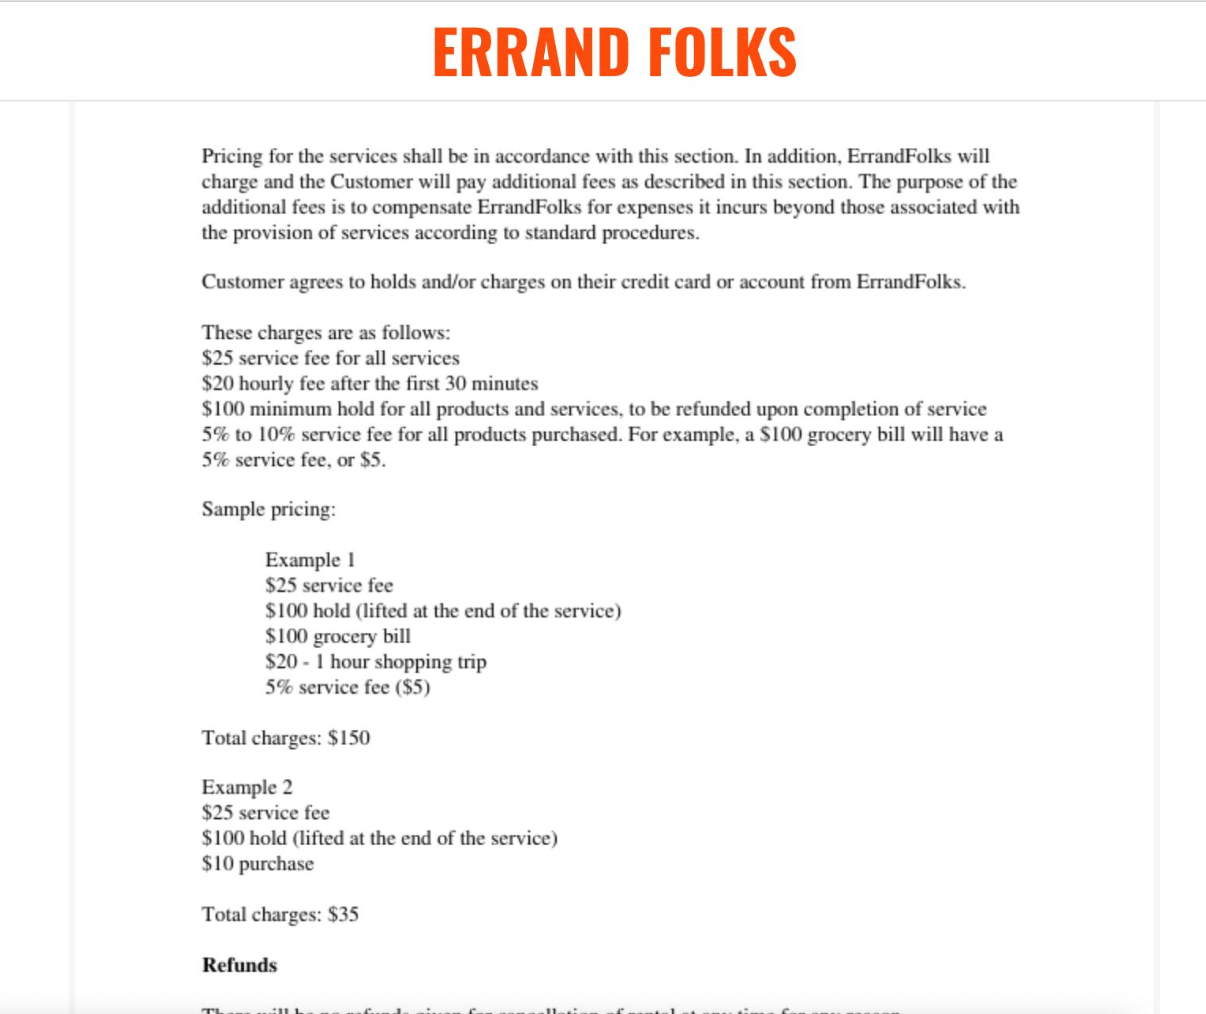 """This is a description of the screenshot of ErrandFolks' Terms of Services page. A job sample was included in Errands' Terms of Service to give a better description of what patrons would be paying for: """"$25 service fee for all services, $20 hourly fee after the first 30 minutes, $100 minimum hold for all products and services to be refunded upon completion of service, [and] 5% to 10% service fee for all products purchased. For example, a $100 grocery bill will have a 5% service fee, or $5. Sample pricing: Example 1. $25 service fee, $100 hold (lifted at the end of the service), $100 grocery bill, $20 - 1 hour shopping trip, 5% service fee ($5), Total charges: $150"""""""